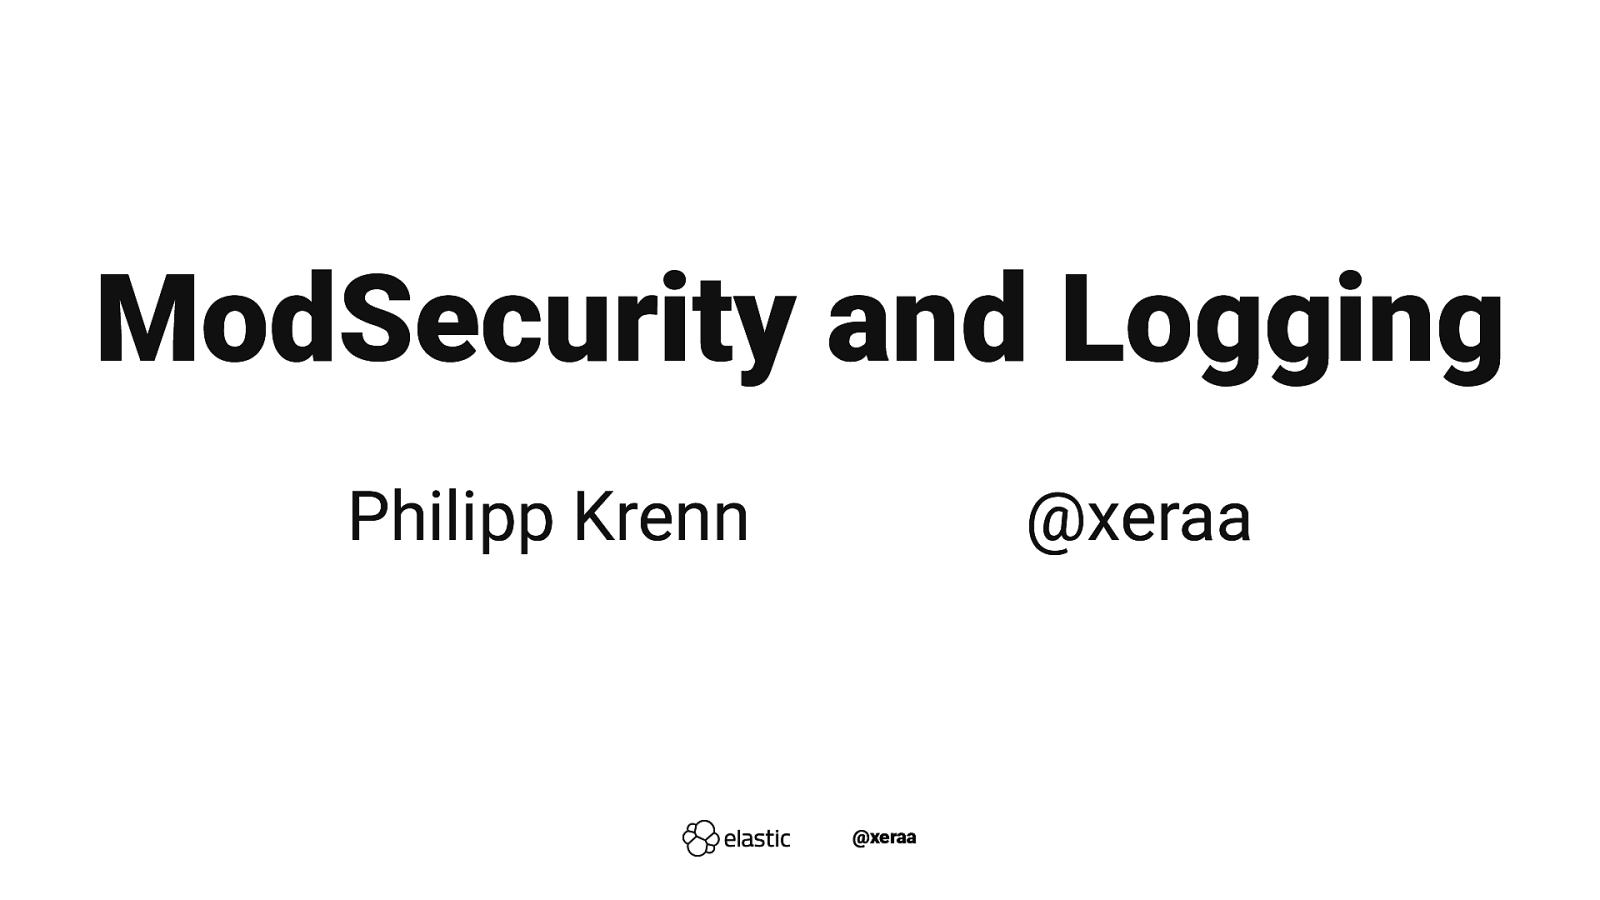 ModSecurity and Logging